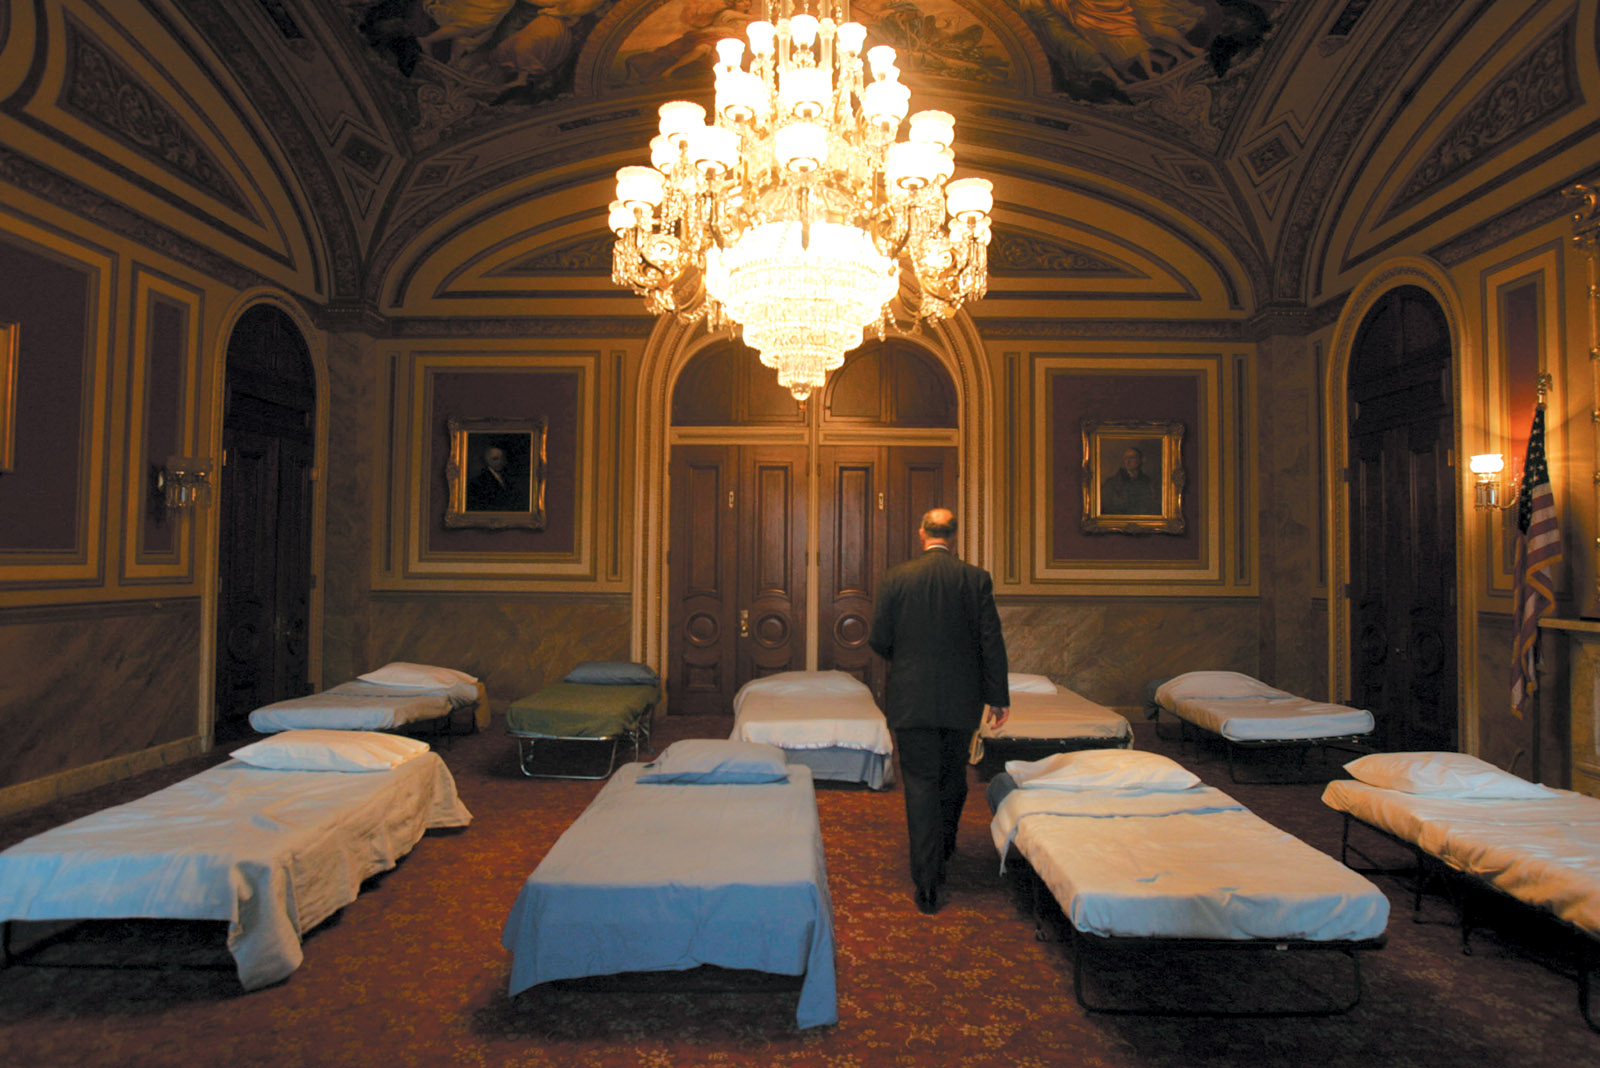 Senator Chuck Schumer walking to the Senate floor through a room filled with cots in preparation for an all-night debate